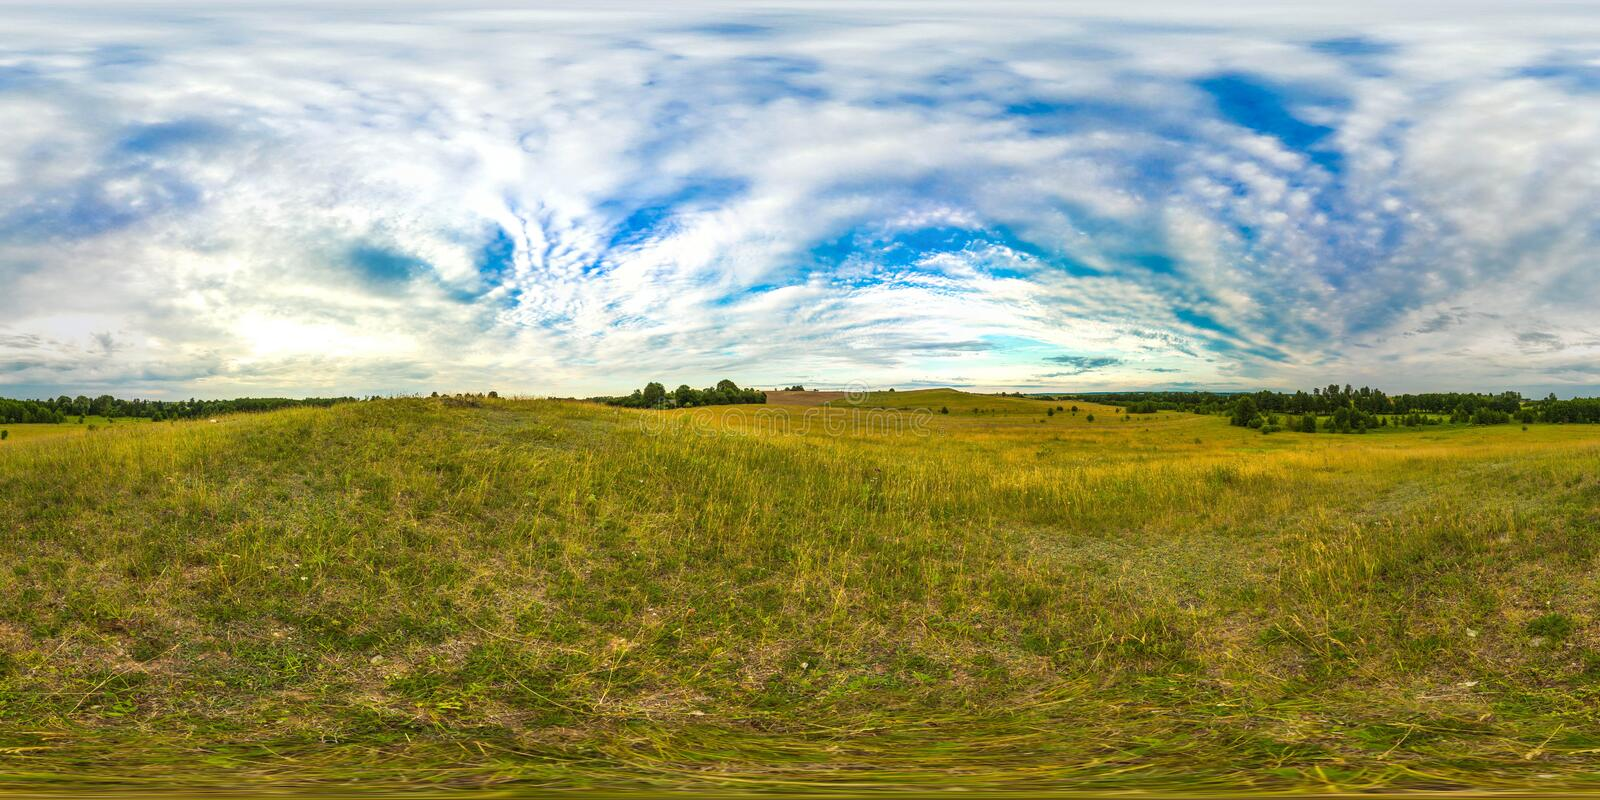 Sunset or sunrise in the green field with blue sky. Image with 3D spherical panorama with 360 viewing angle. Ready for virtual vector illustration